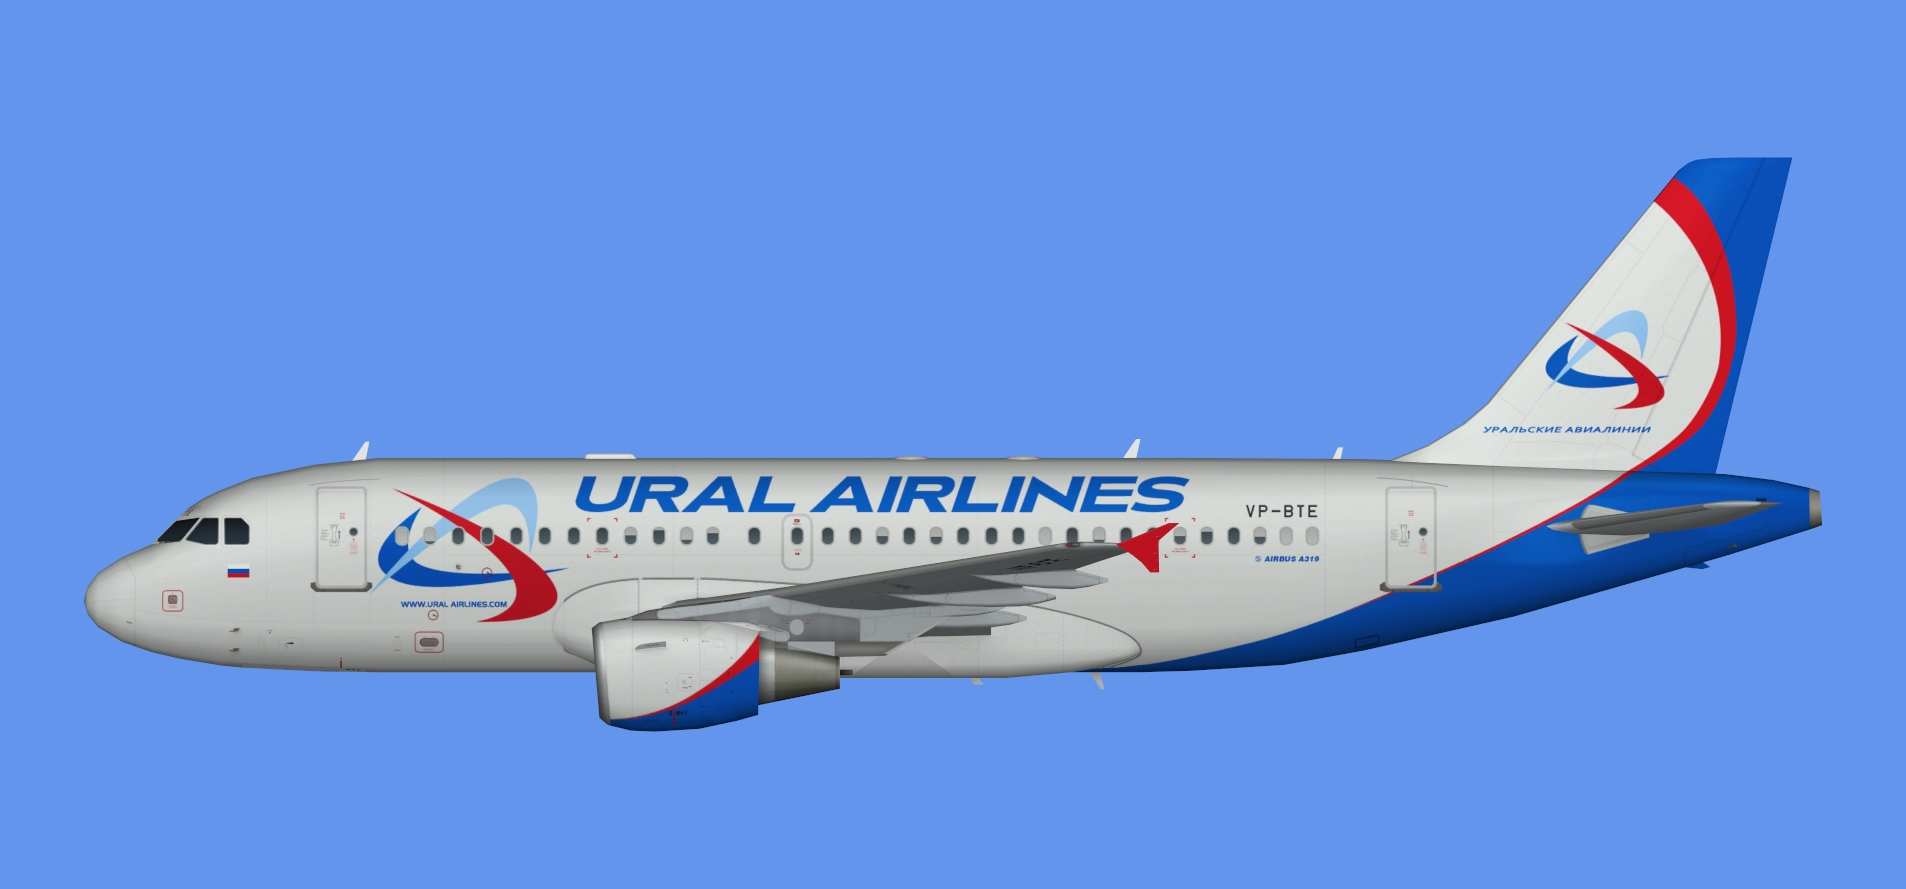 Ural Airlines Airbus A319